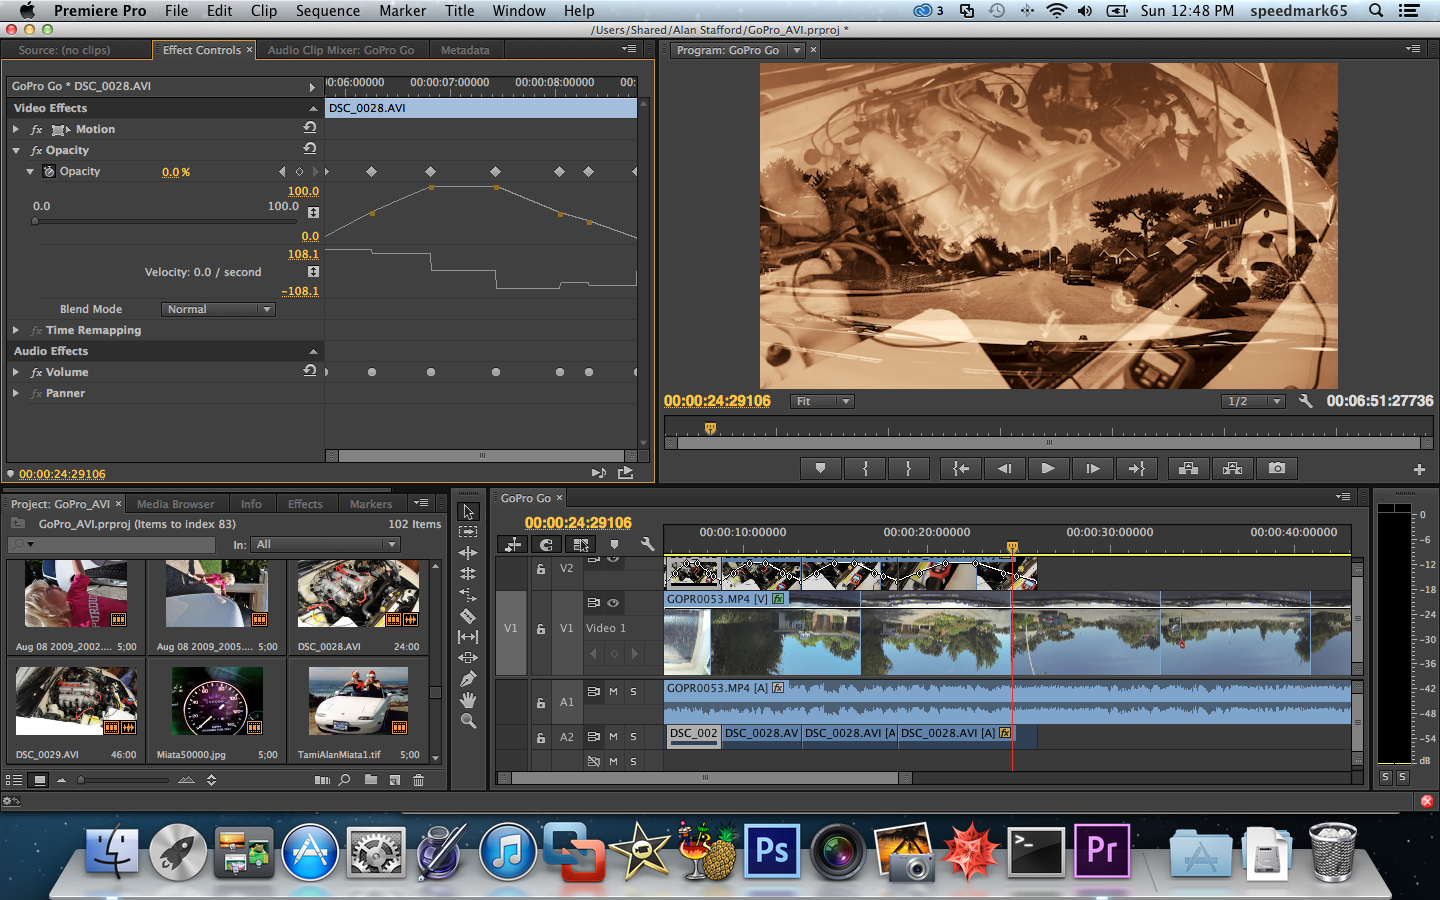 how to download adobe premiere pro cs6 for free full version 64 bit